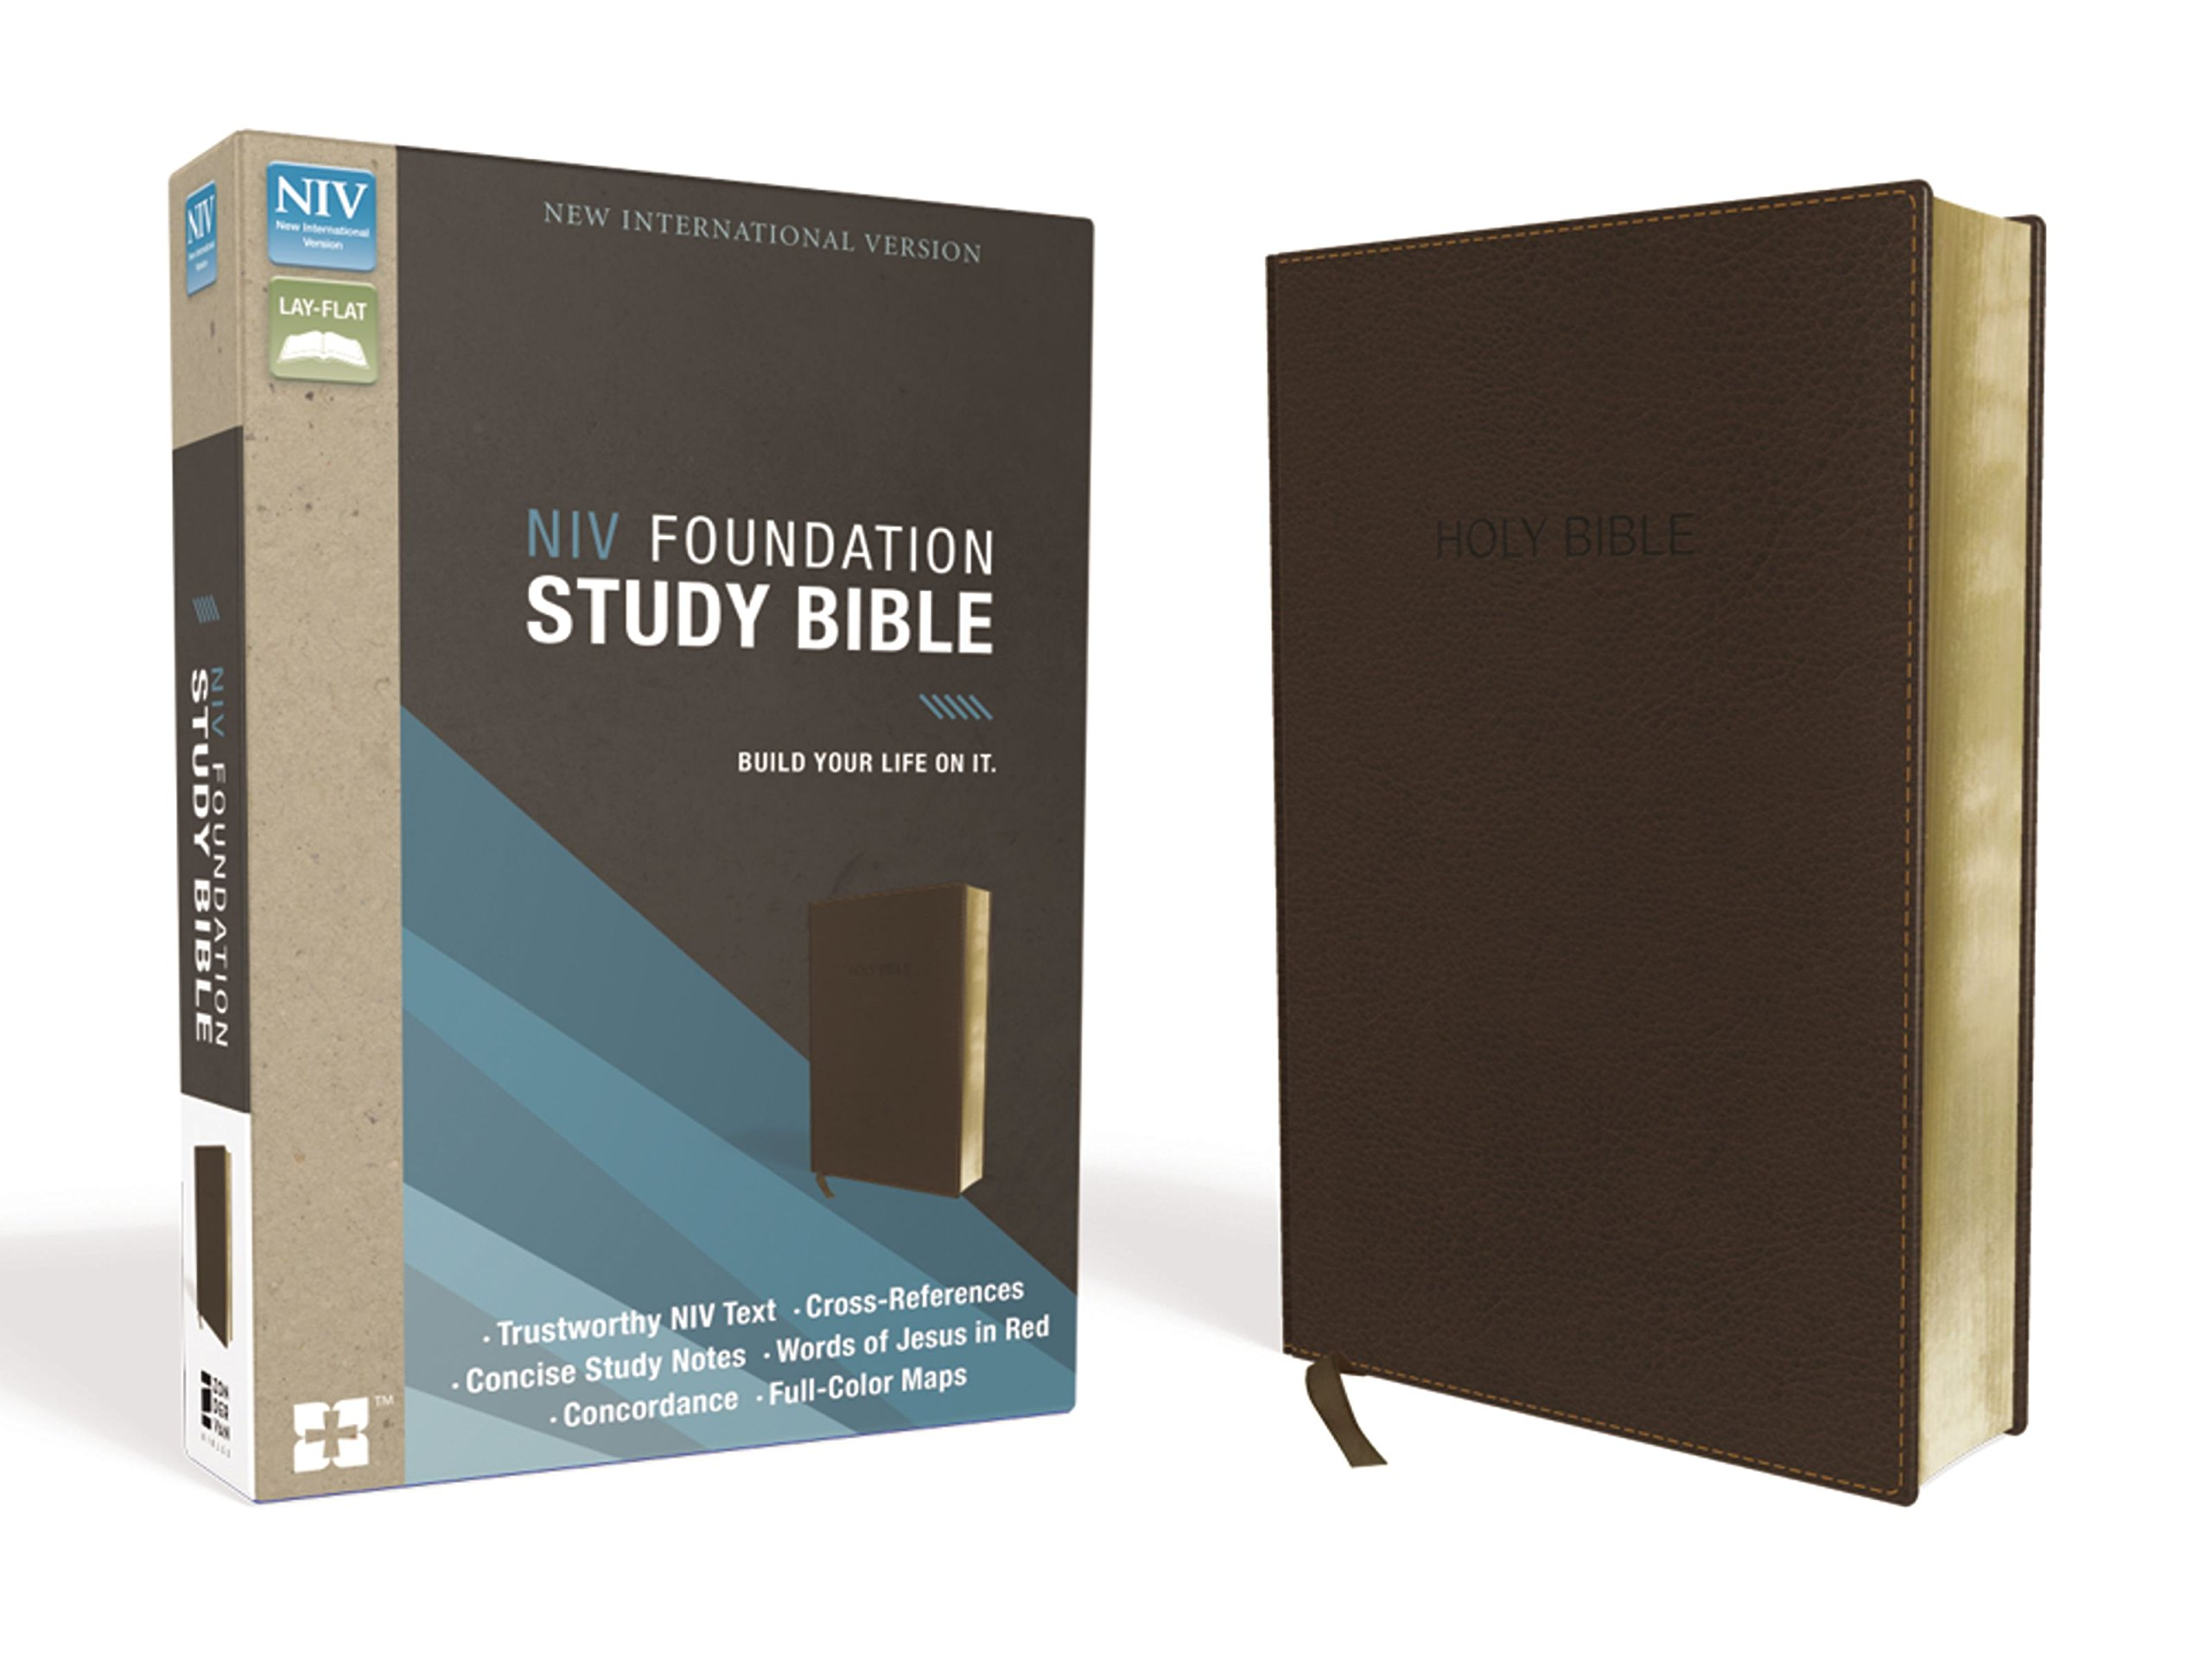 NIV, Foundation Study Bible, Leathersoft, Brown, Red Letter Edition by HarperCollins Christian Pub.